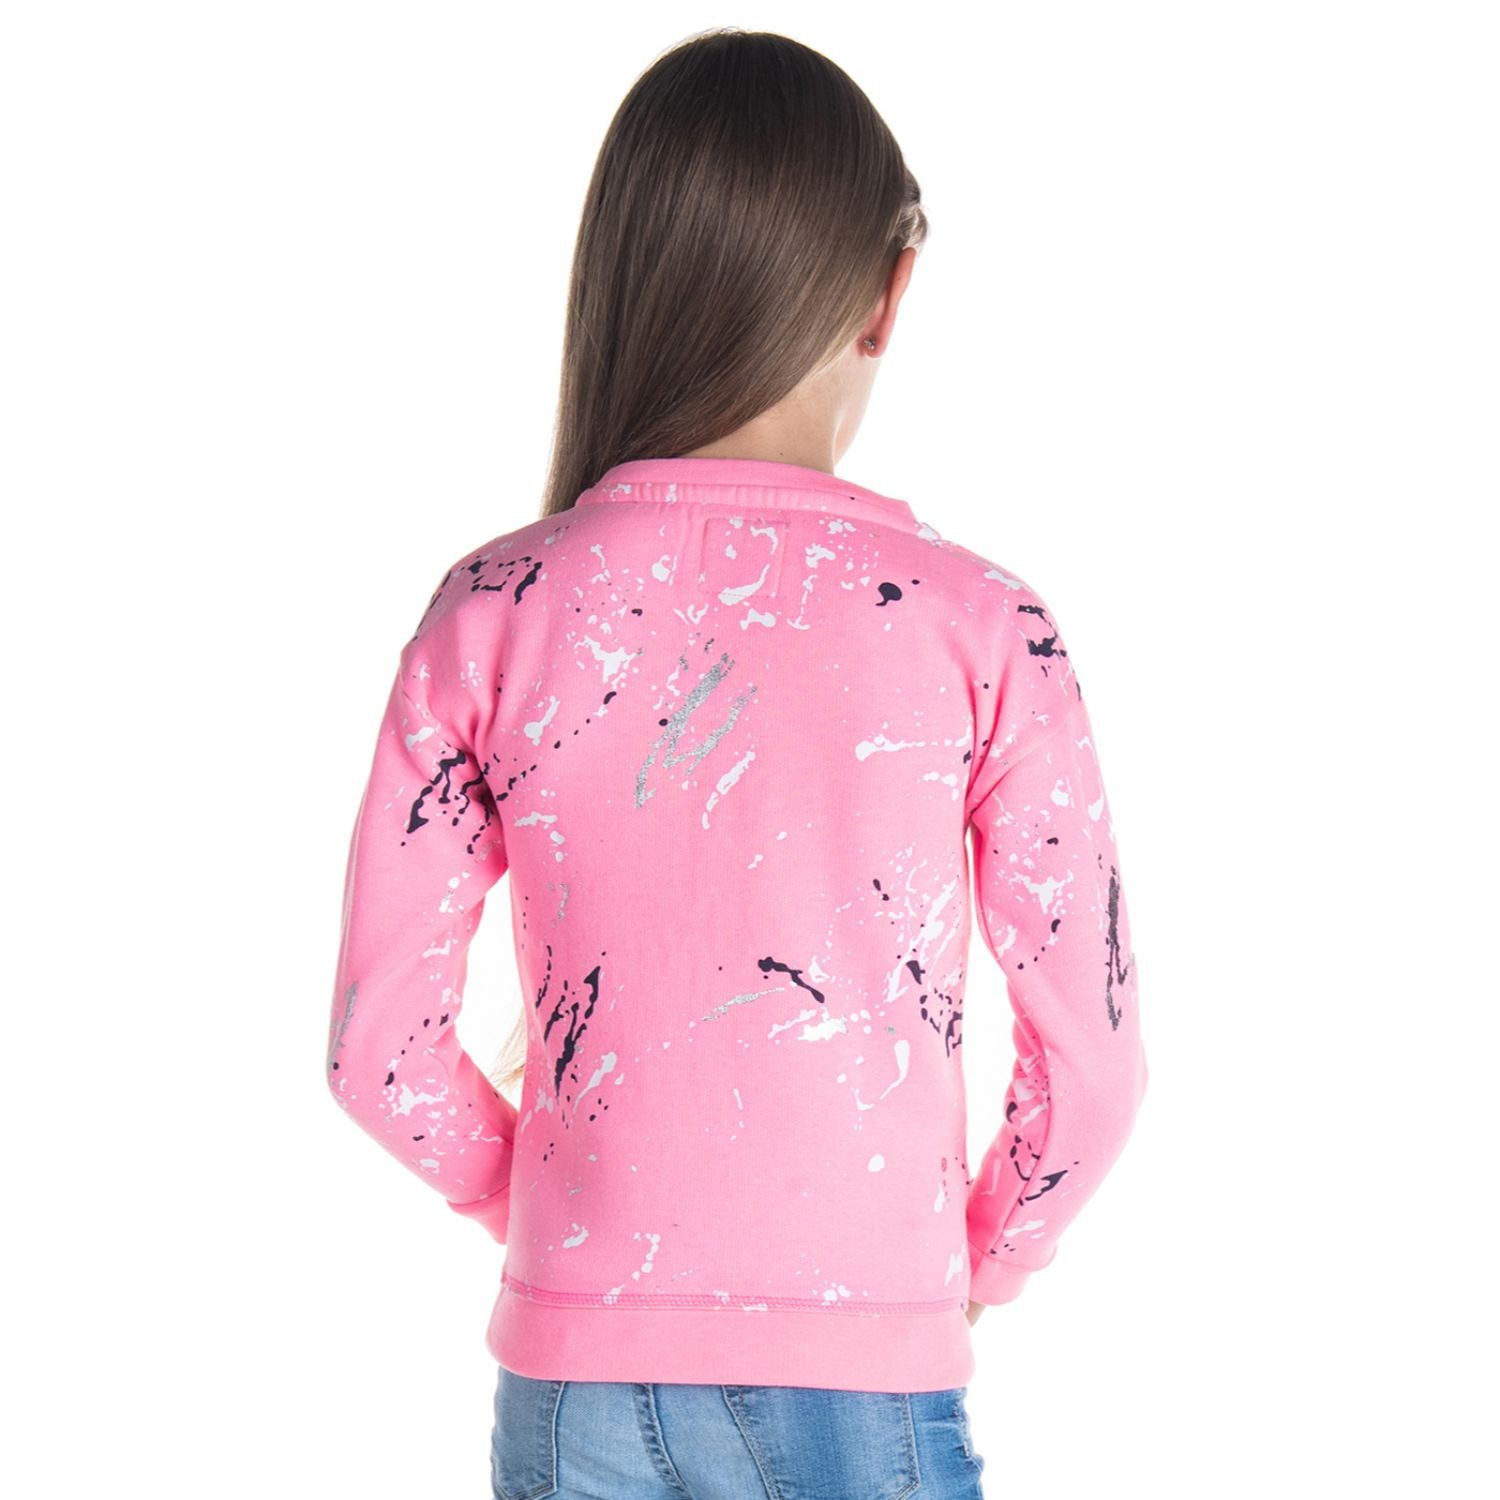 Paintball Sweatshirt for Girls